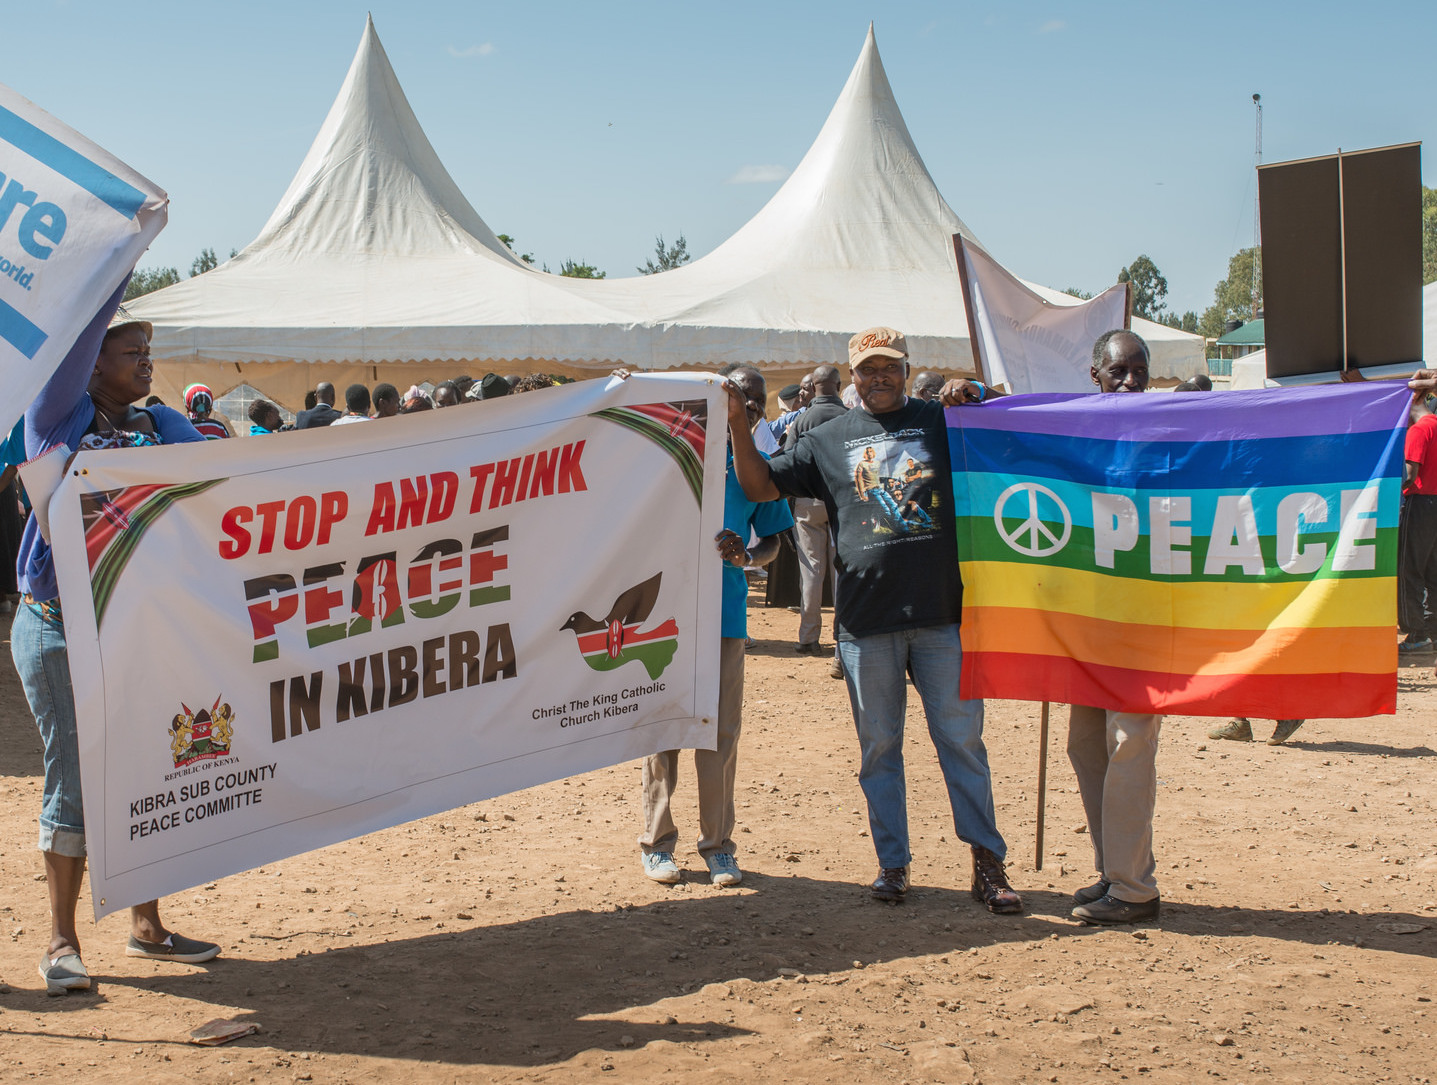 """Peace March in Kibera with signs saying """"Stop and Think Peace in Kibera"""" and """"Peace"""" on a rainbow background with a peace sign."""